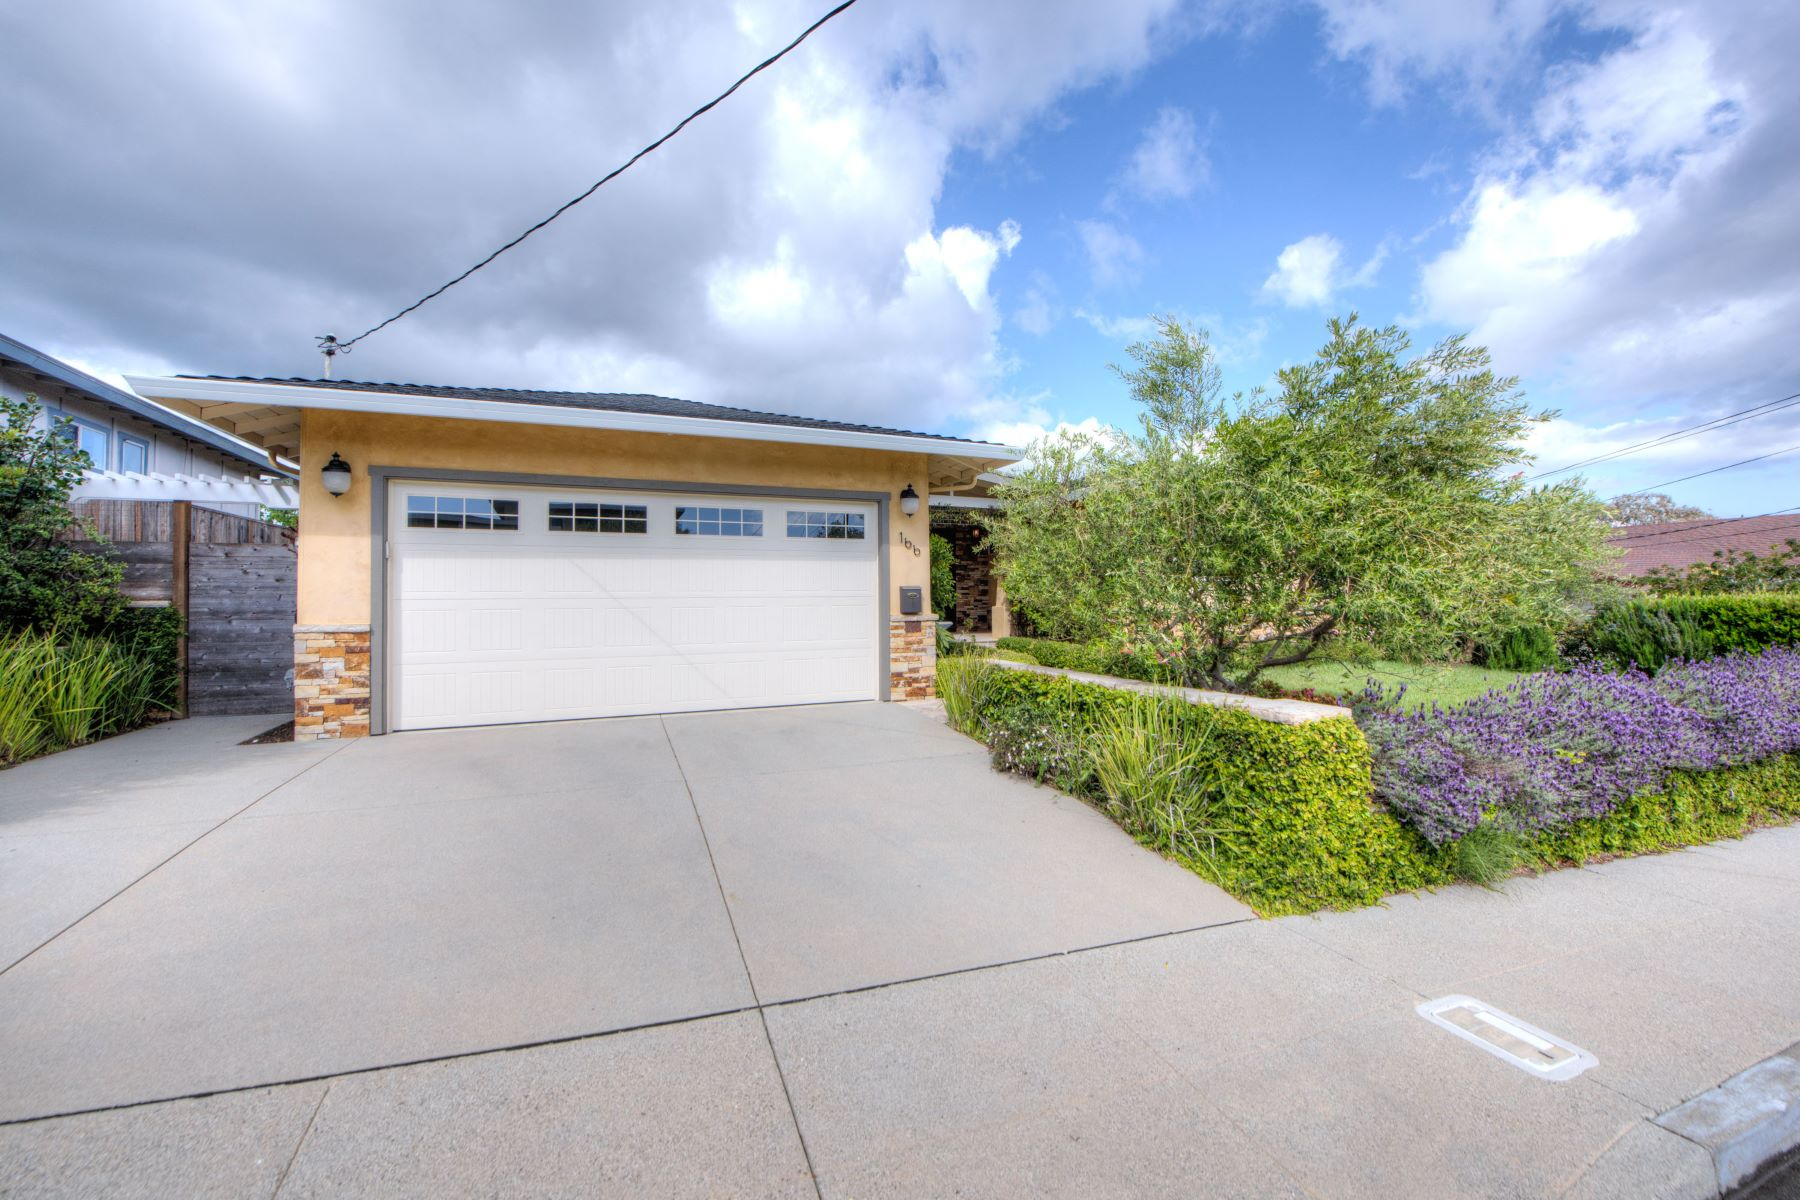 Single Family Home for Sale at Rafael Highlands Showstopper 166 Ridgewood Drive San Rafael, California 94901 United States